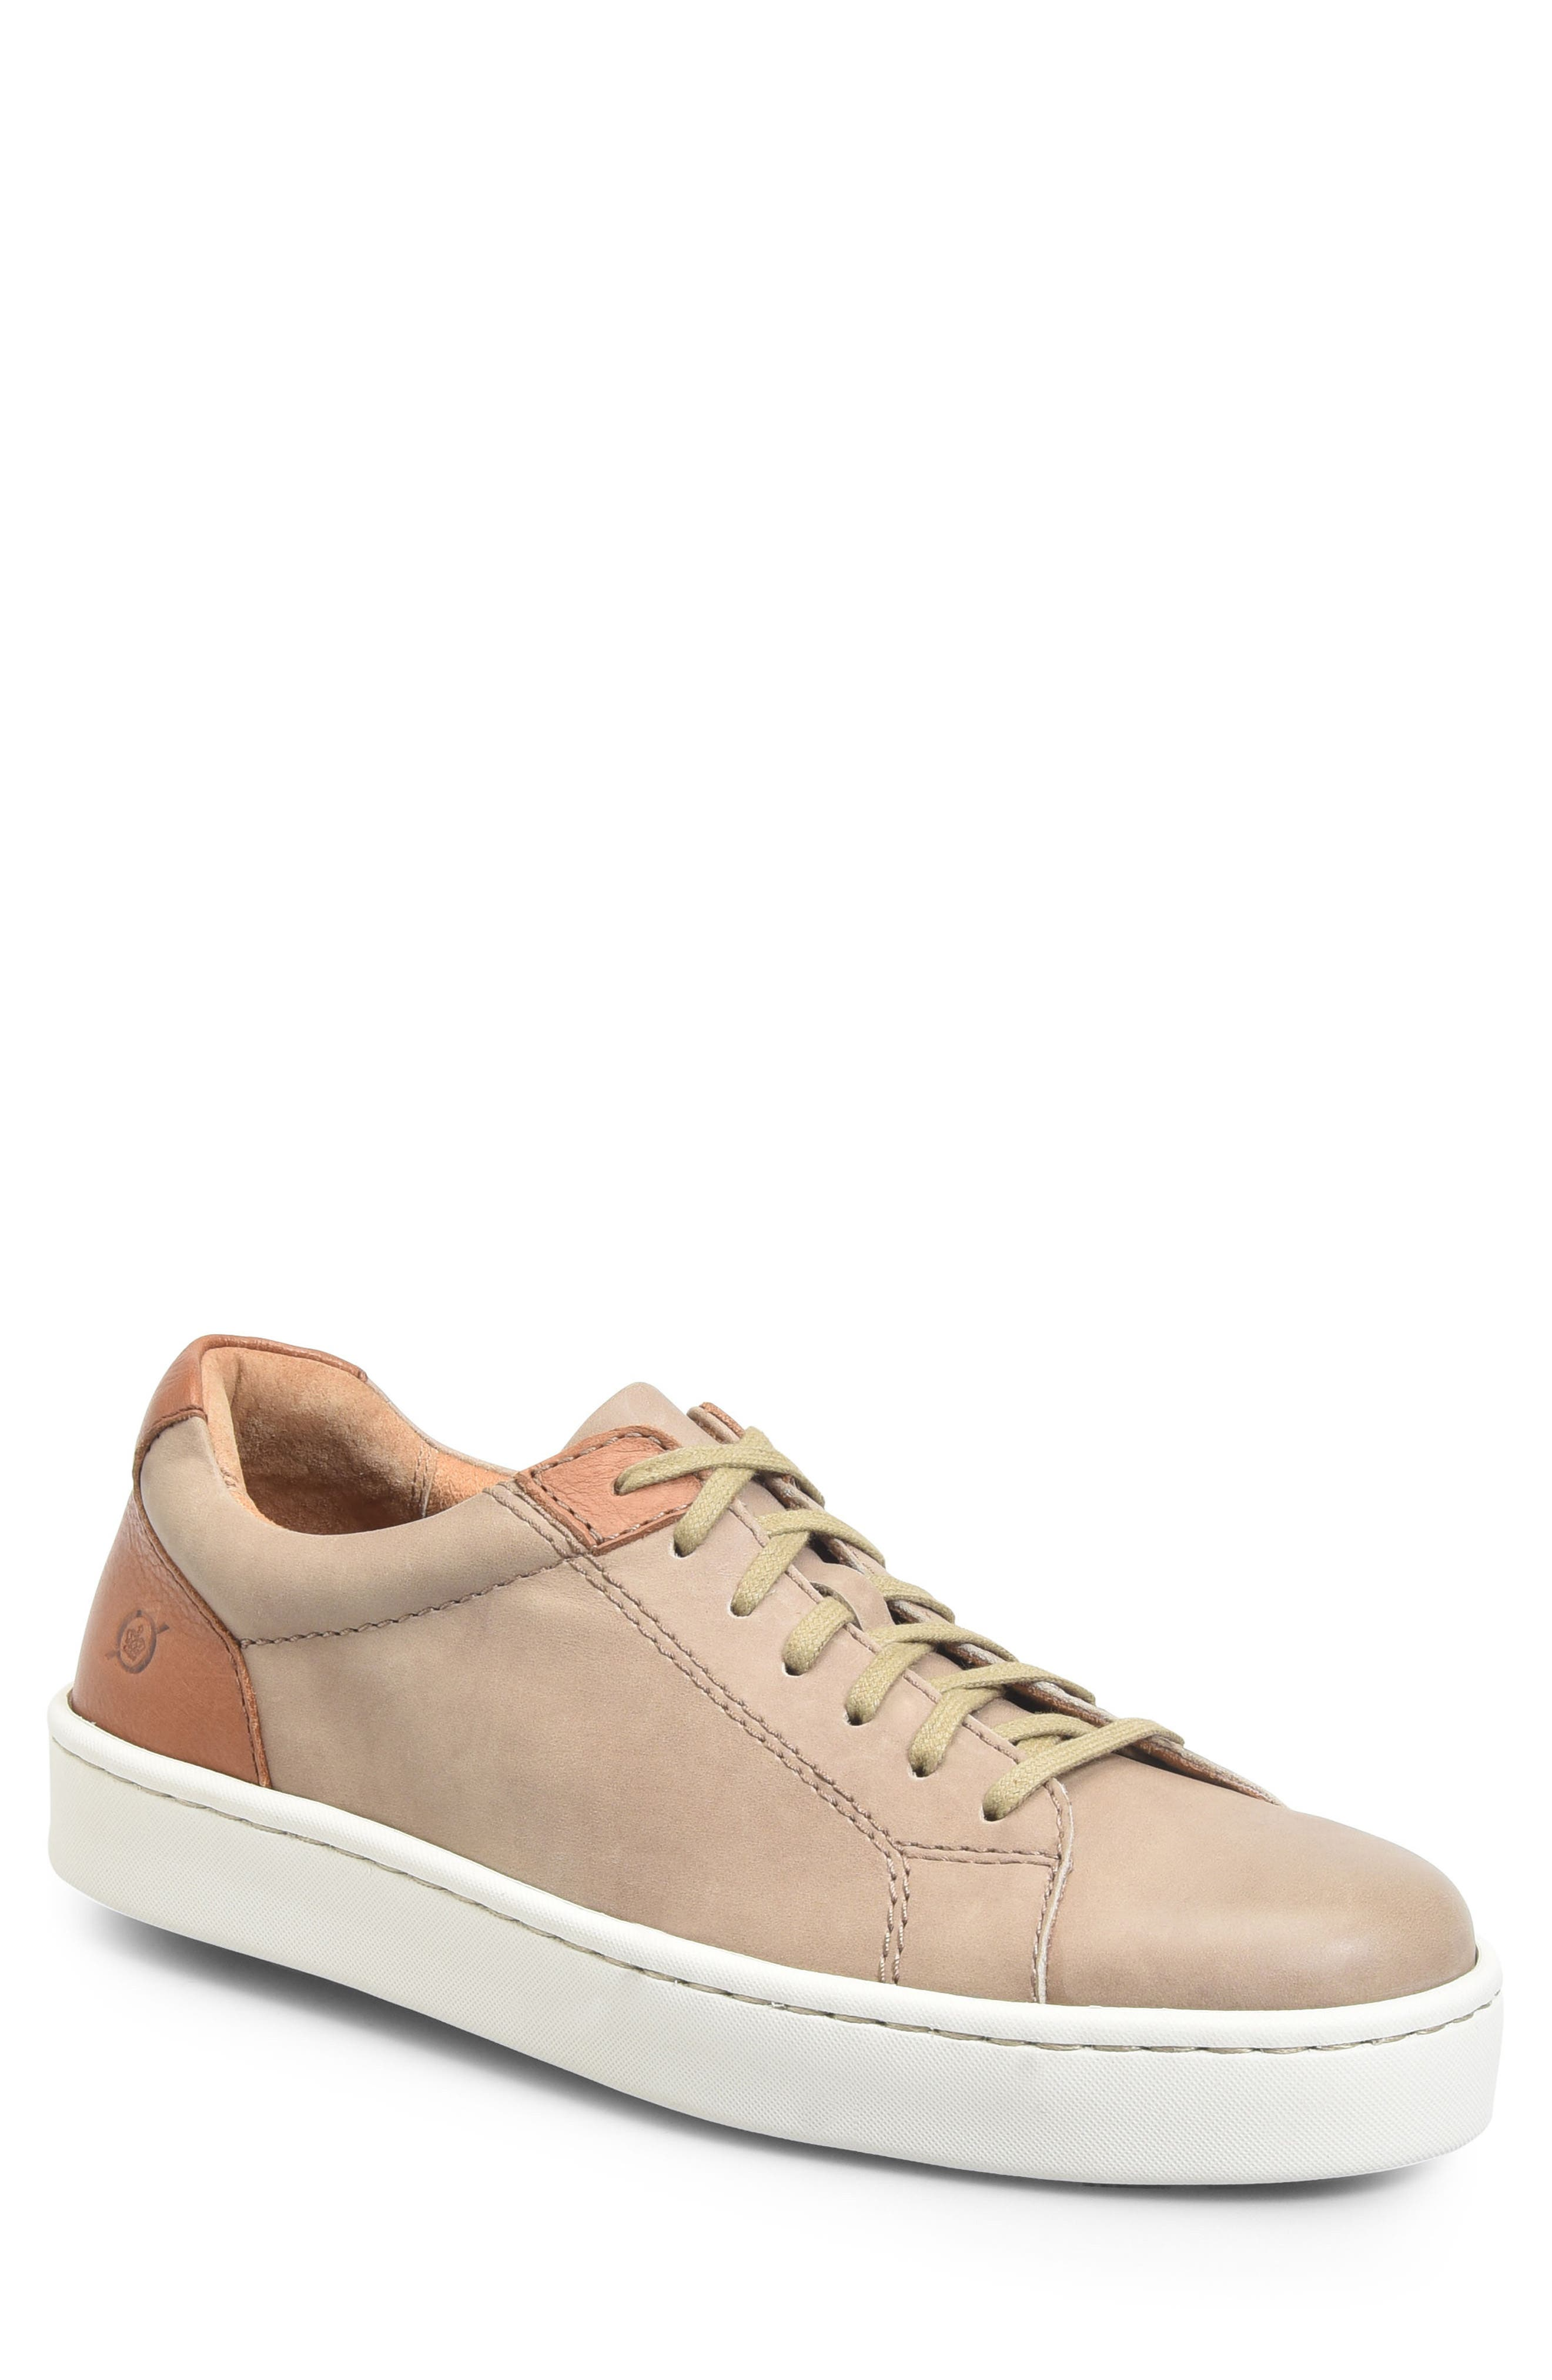 Jib Sneaker,                         Main,                         color, Taupe/ Brown Leather